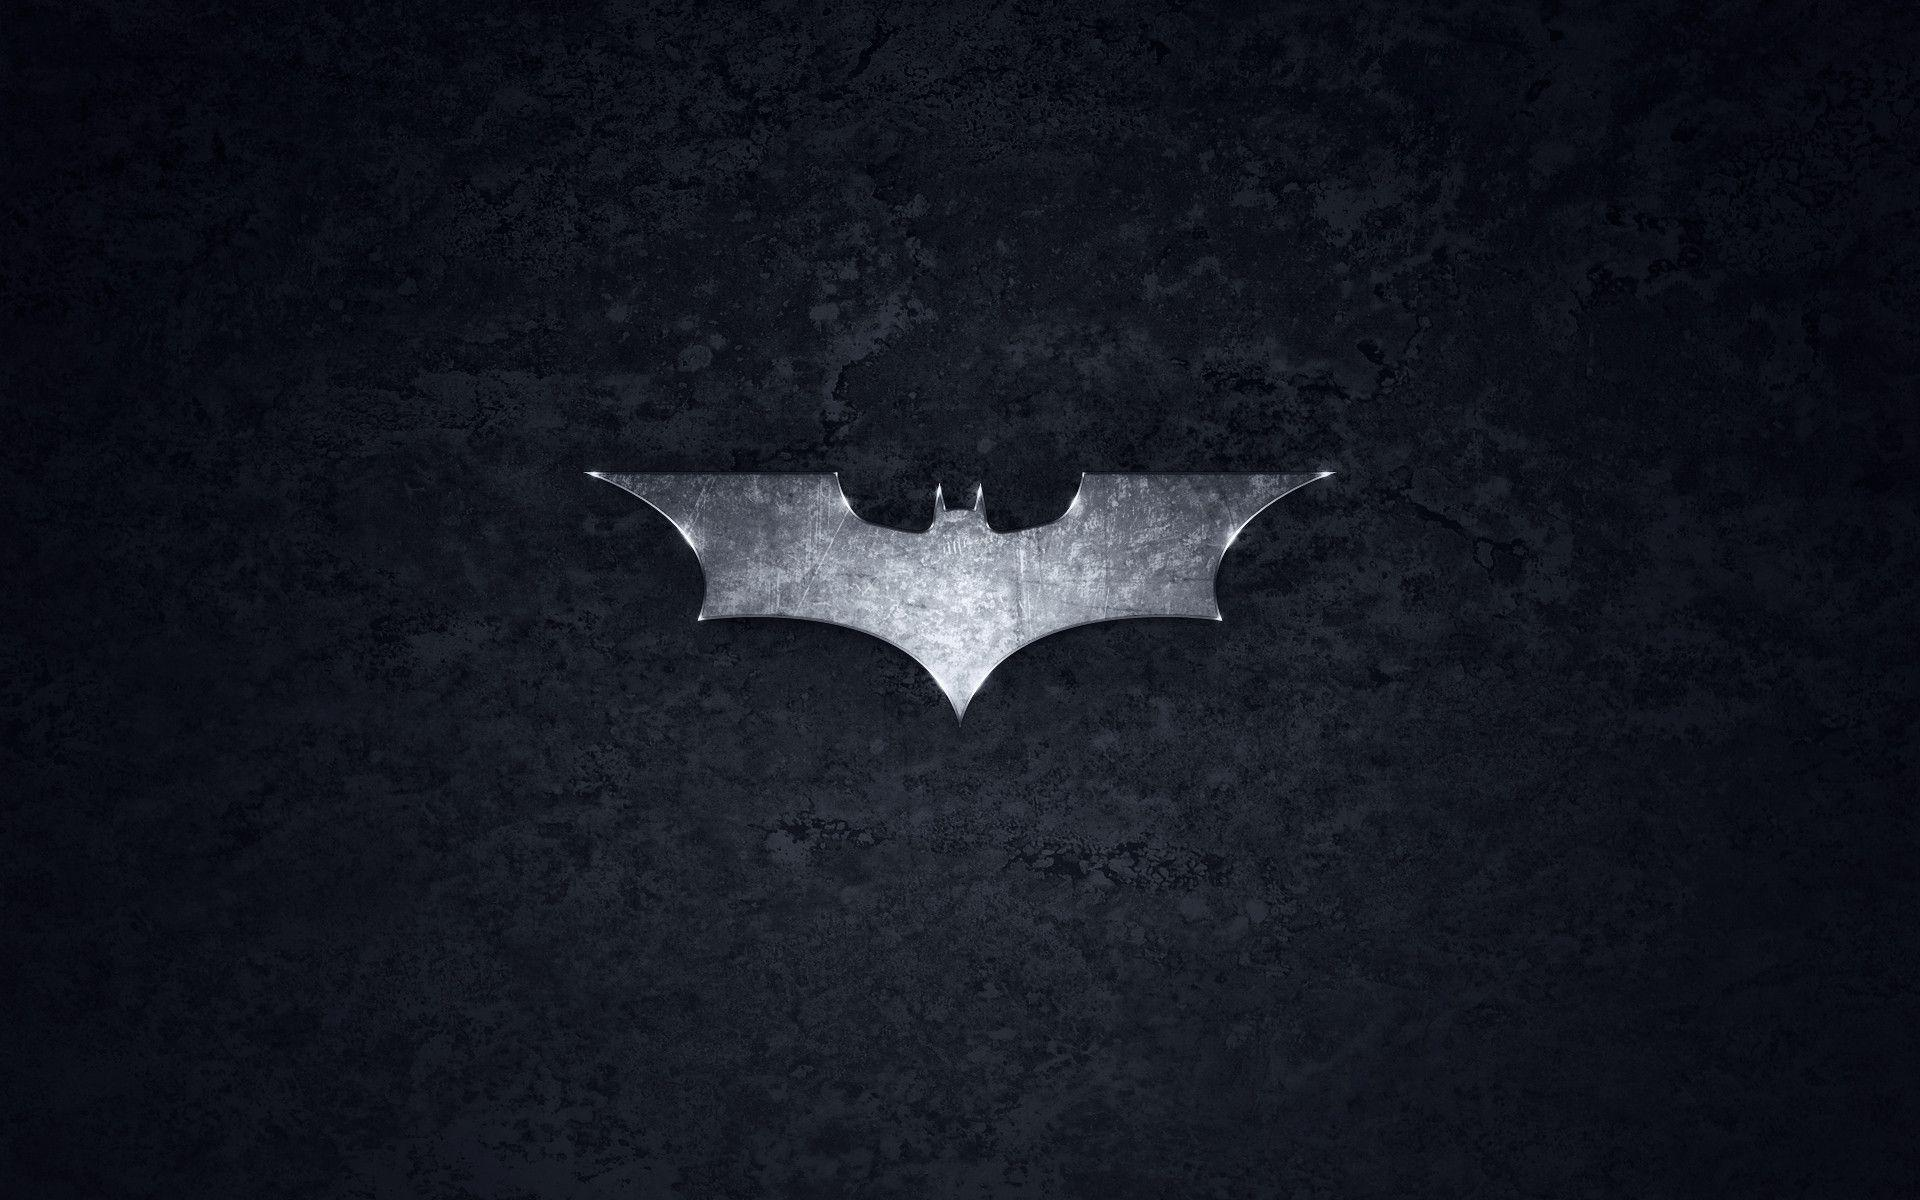 batman logo wallpaper hd imashon